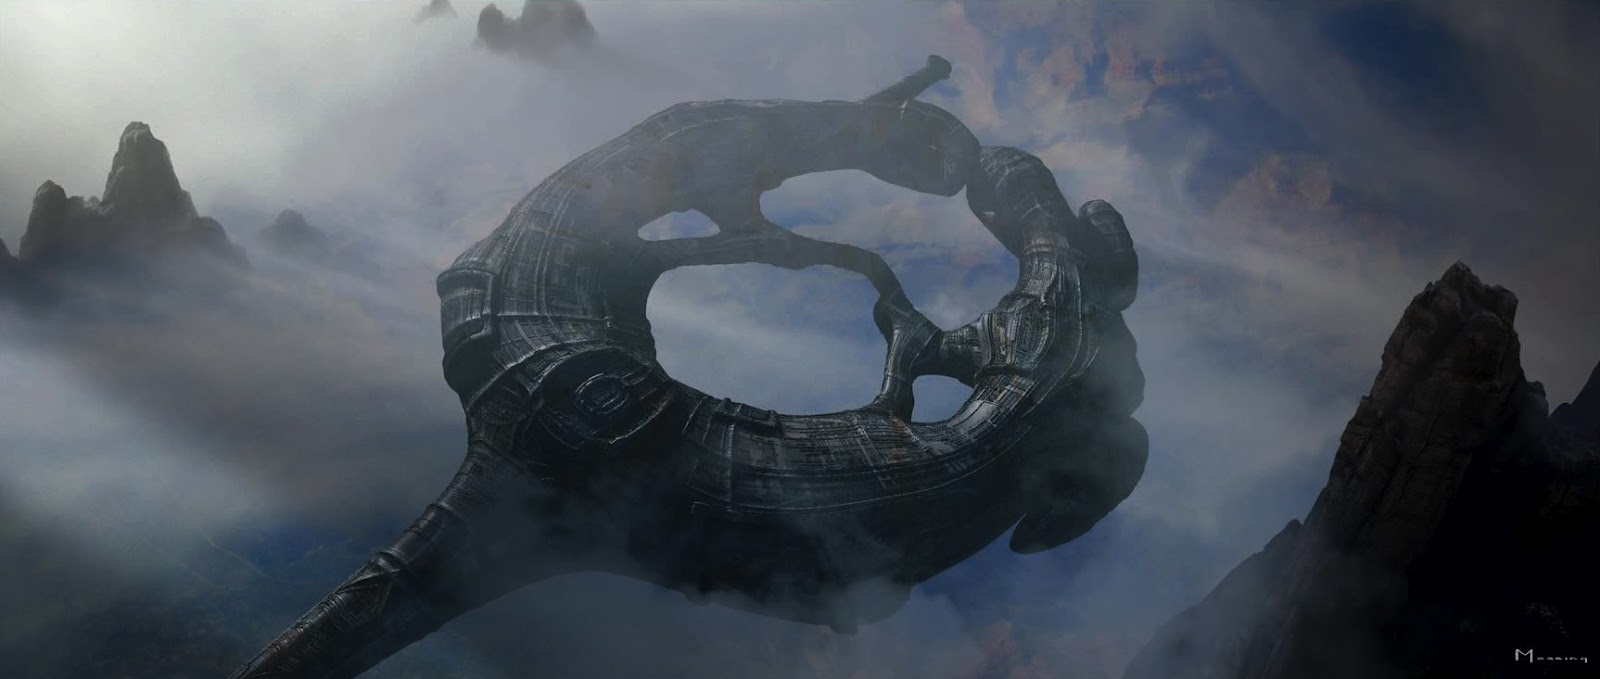 Alien Explorations Prometheus Alternate Toroidal Shaped Engineer Ships